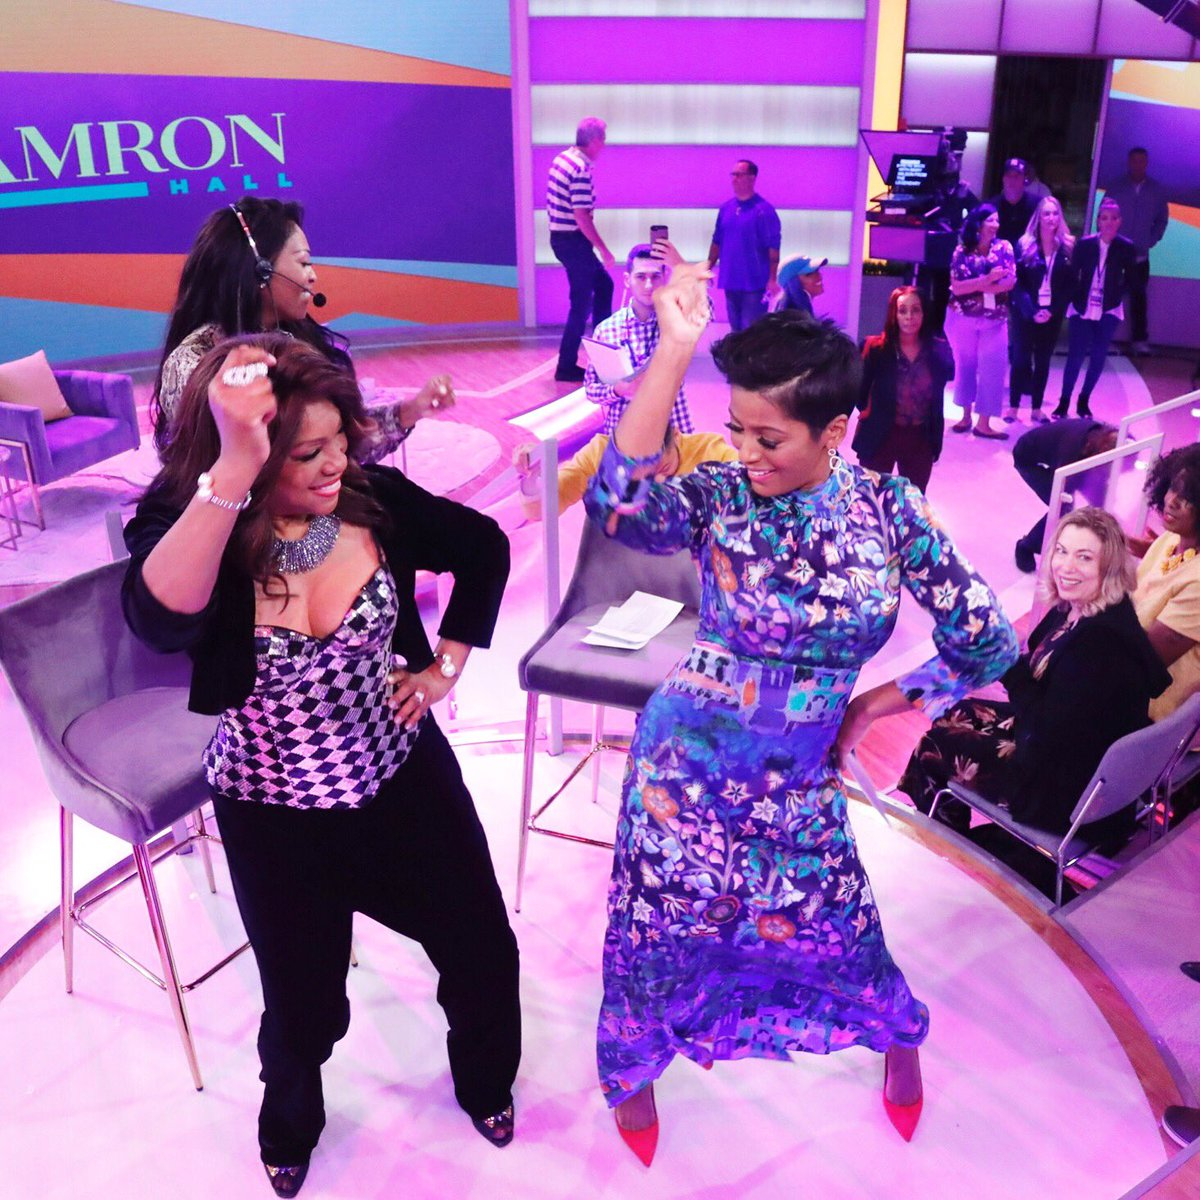 When the great @mwilsonsupreme Mary Wilson teaches you how to work it like a Supreme!! @tamronhallshow fun show!!!!